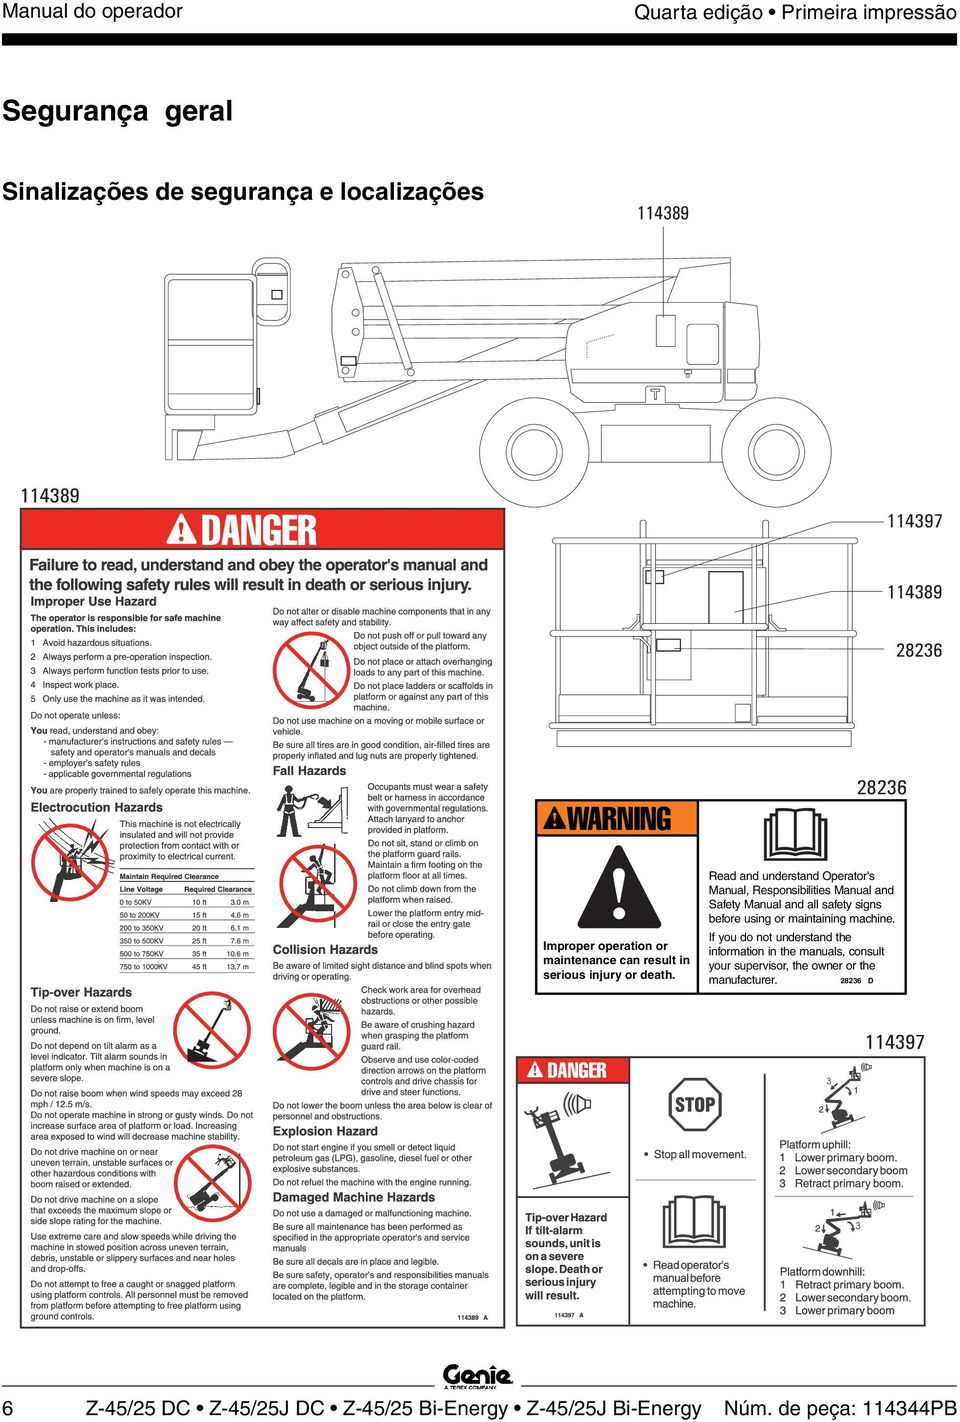 Read and understand Operator's Manual, Responsibilities Manual and Safety Manual and all safety signs before using or maintaining machine.